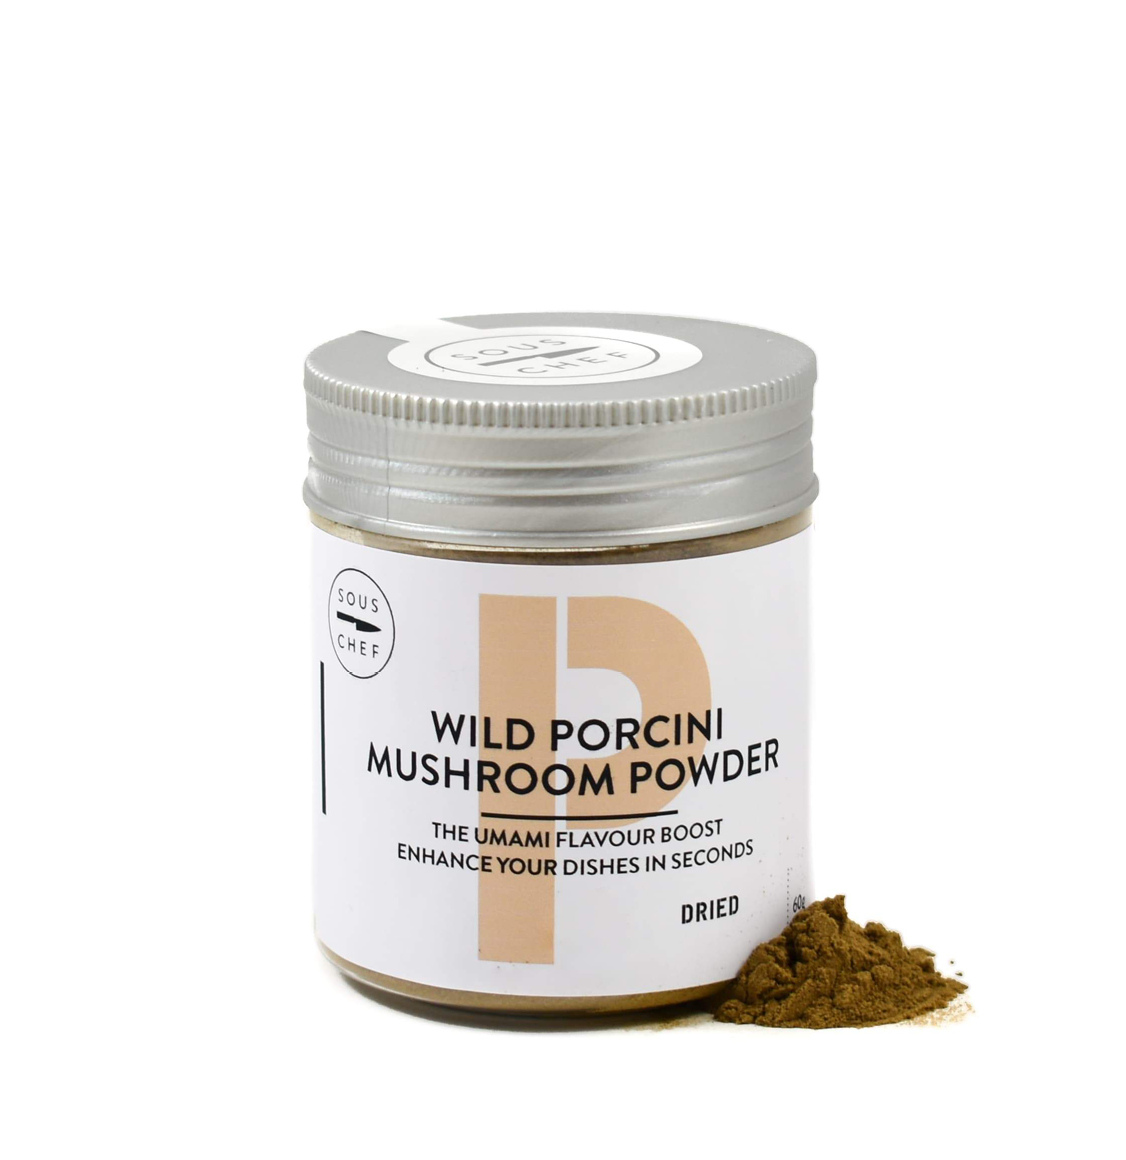 Sous Chef Dried Wild Porcini Mushroom Powder 60g